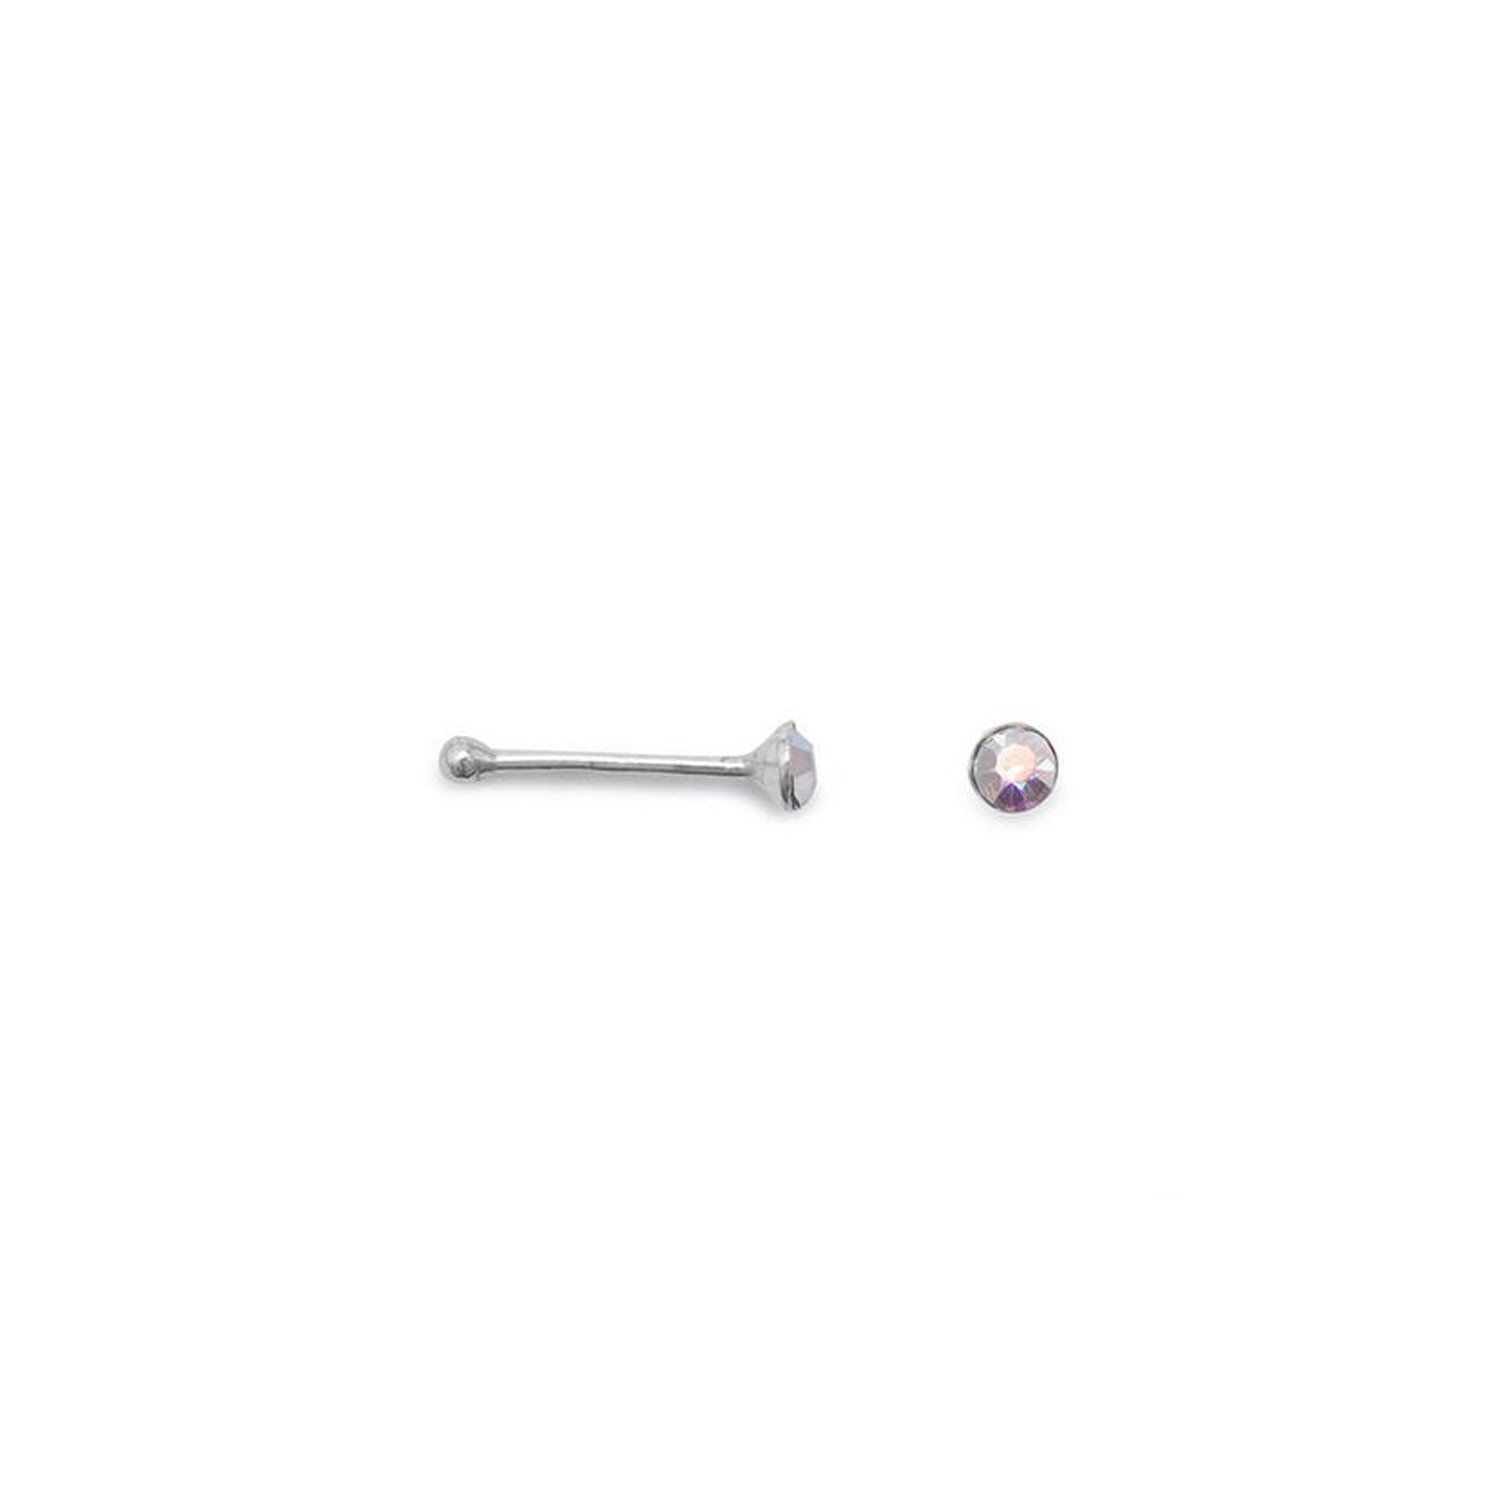 Nose piercing bump types  Clear Crystal Nose Studs  Products  Pinterest  Products